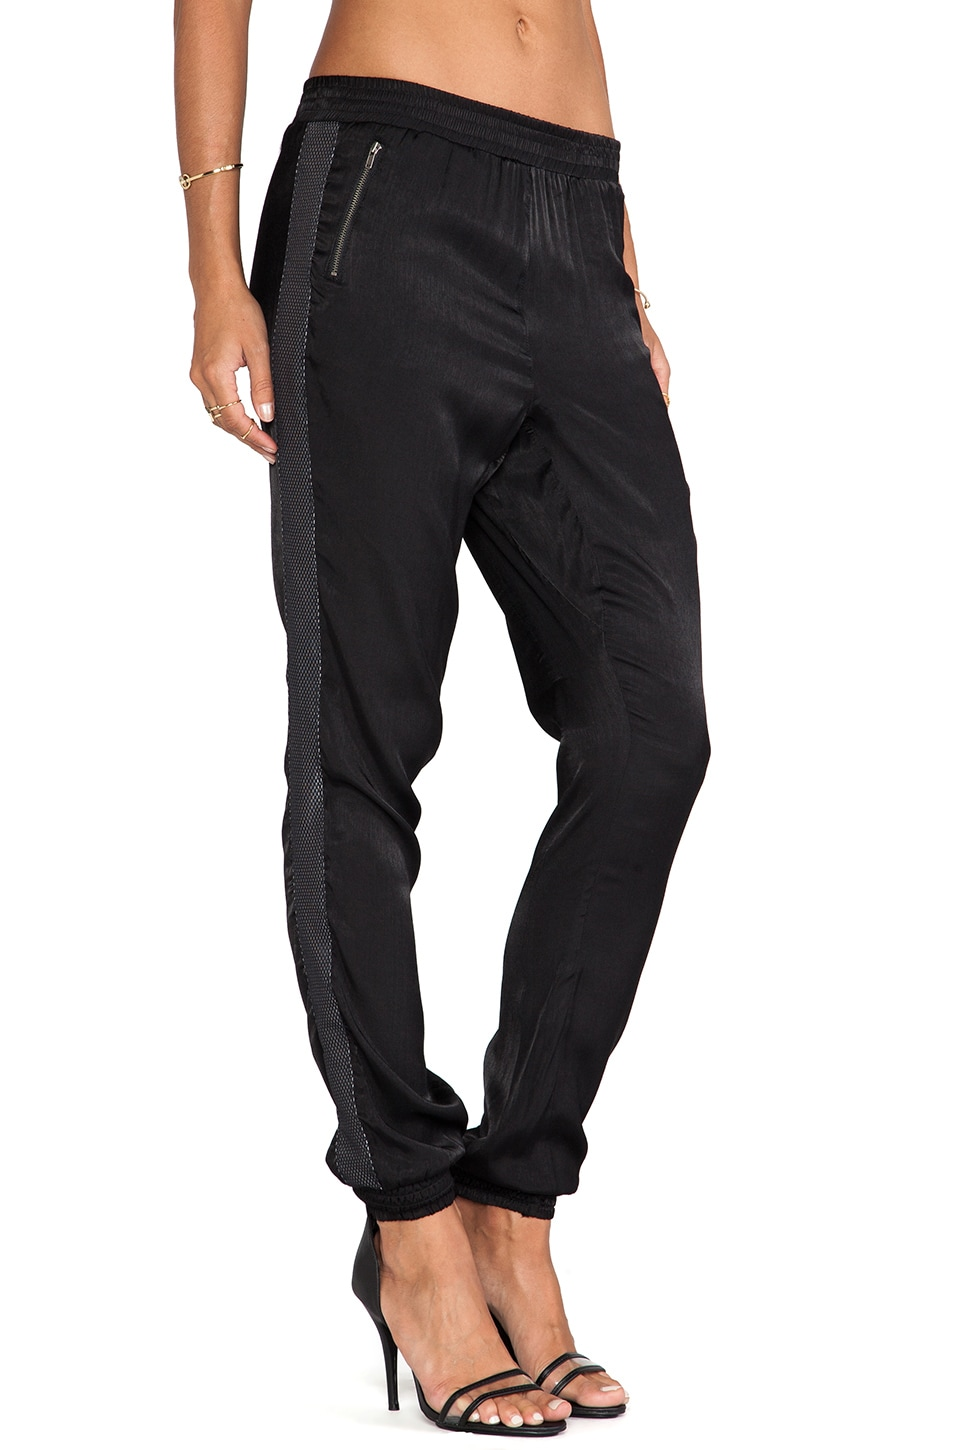 One Teaspoon Flying Tiger Pant in Black